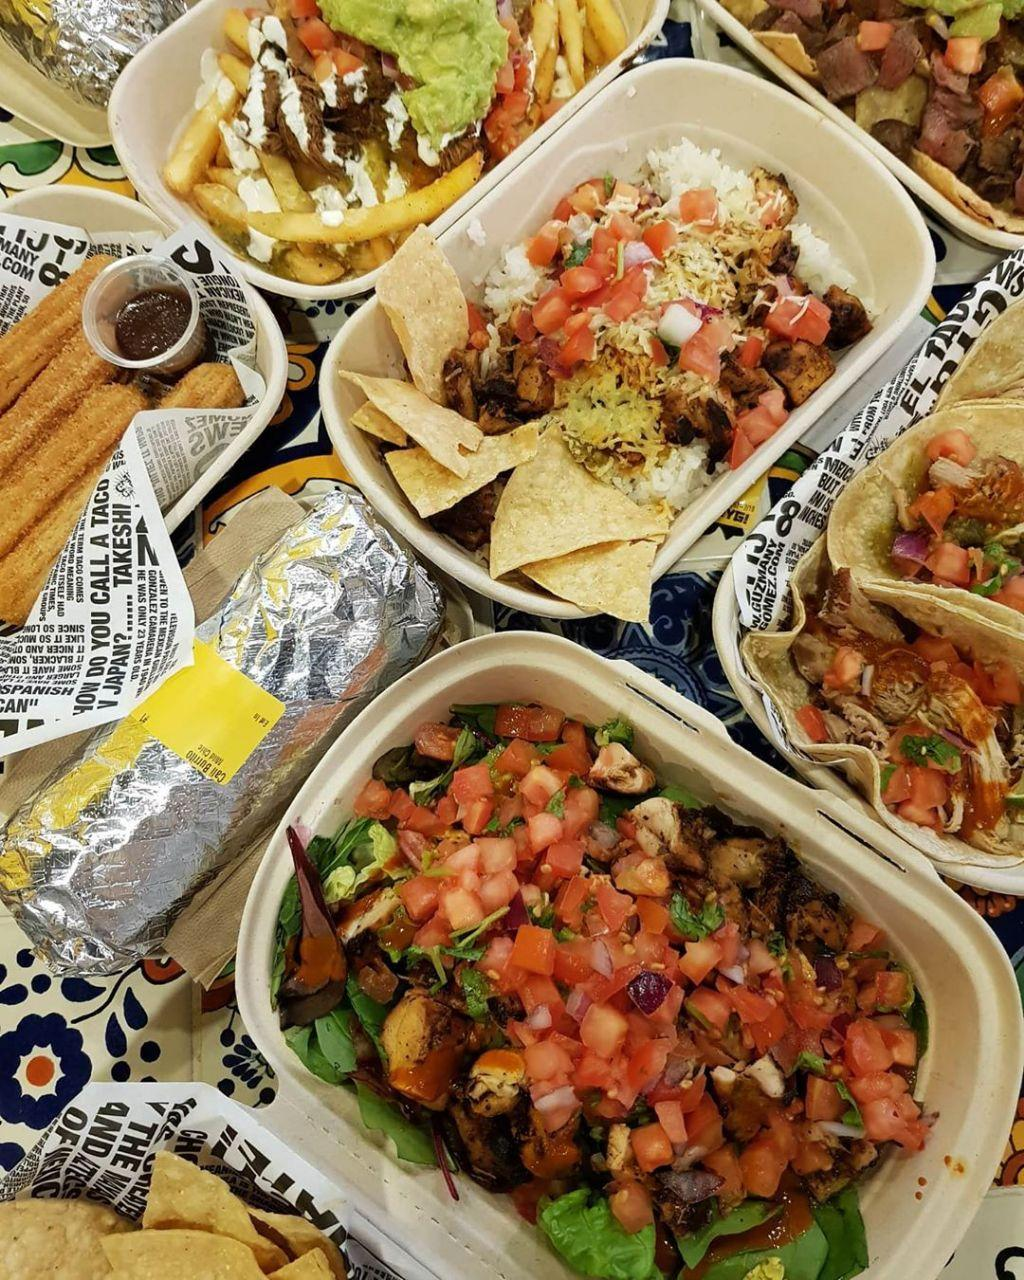 Guzman Y Gomez burritos and tacos